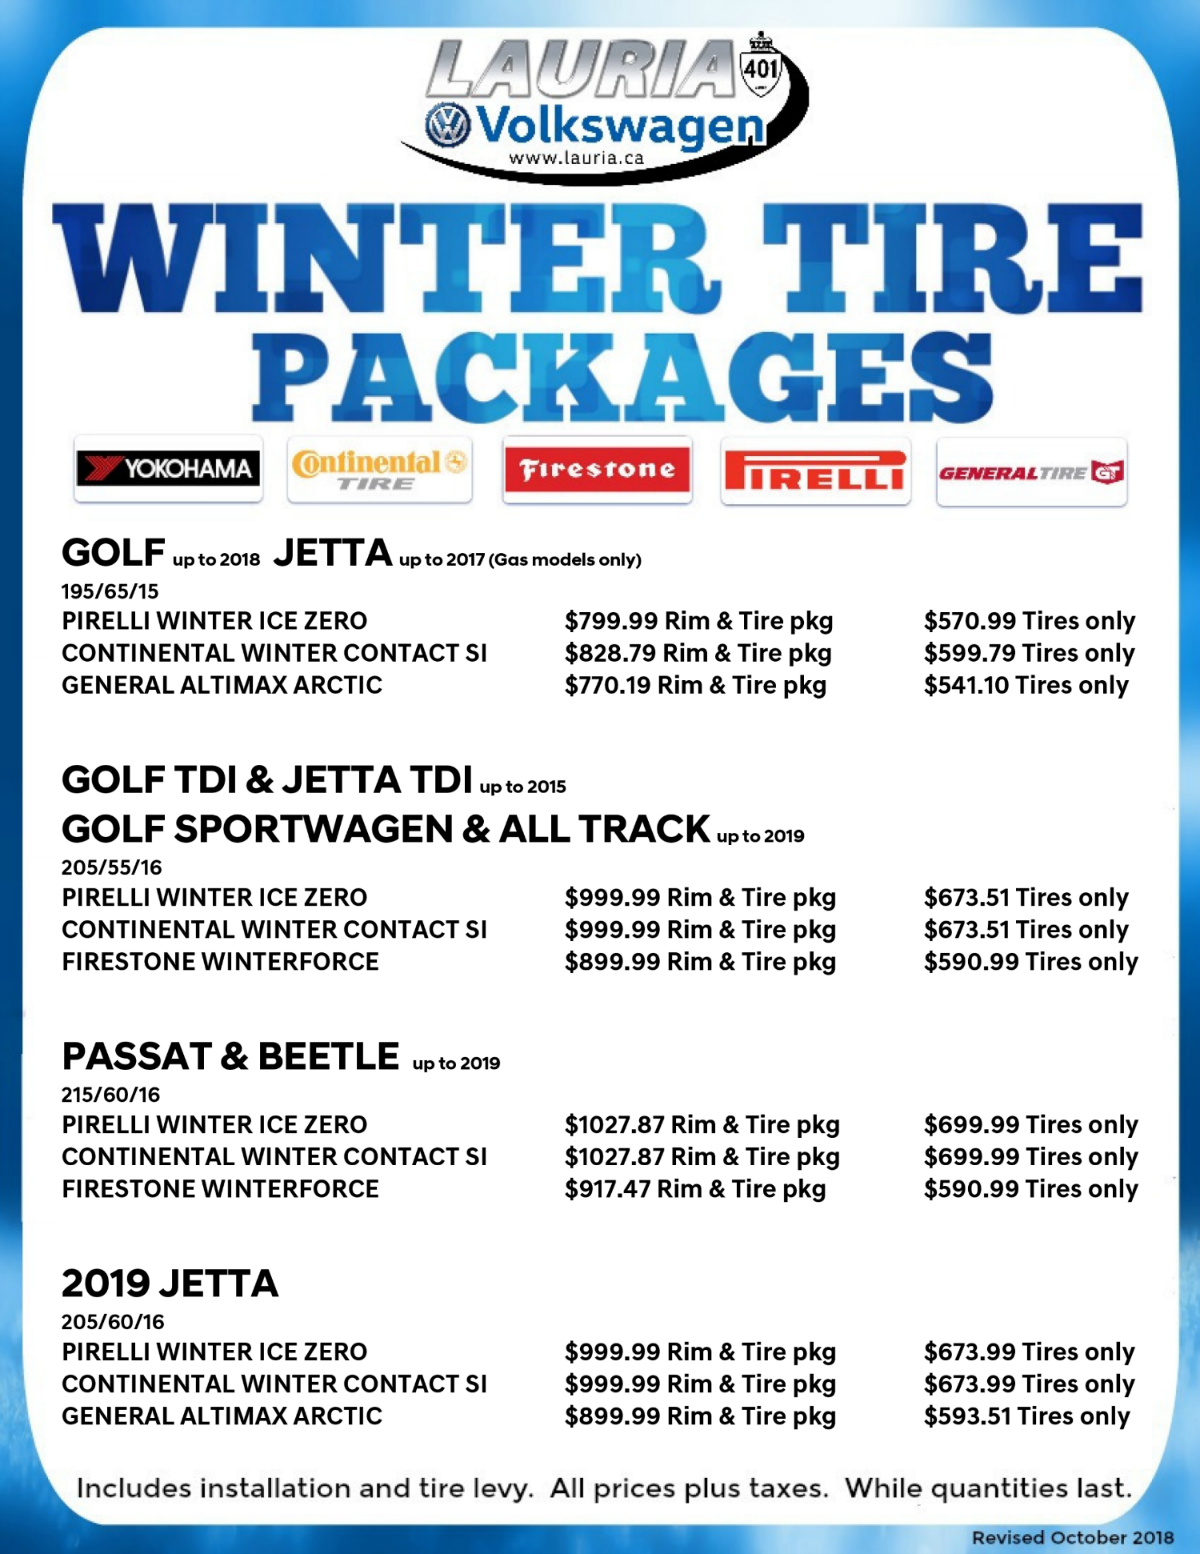 Winter tire packages for VW Golf and VW Jetta, and snow tires for VW Passat and Volkswagen Beetle near Oshawa Ontario